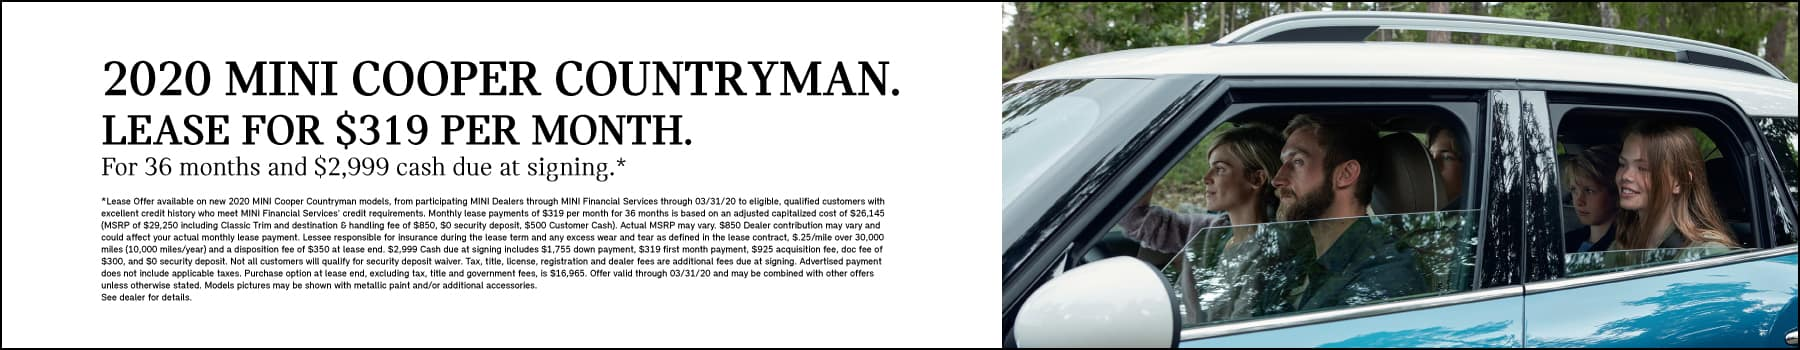 Countryman Cooper: Lease: $319 per month for 36 months